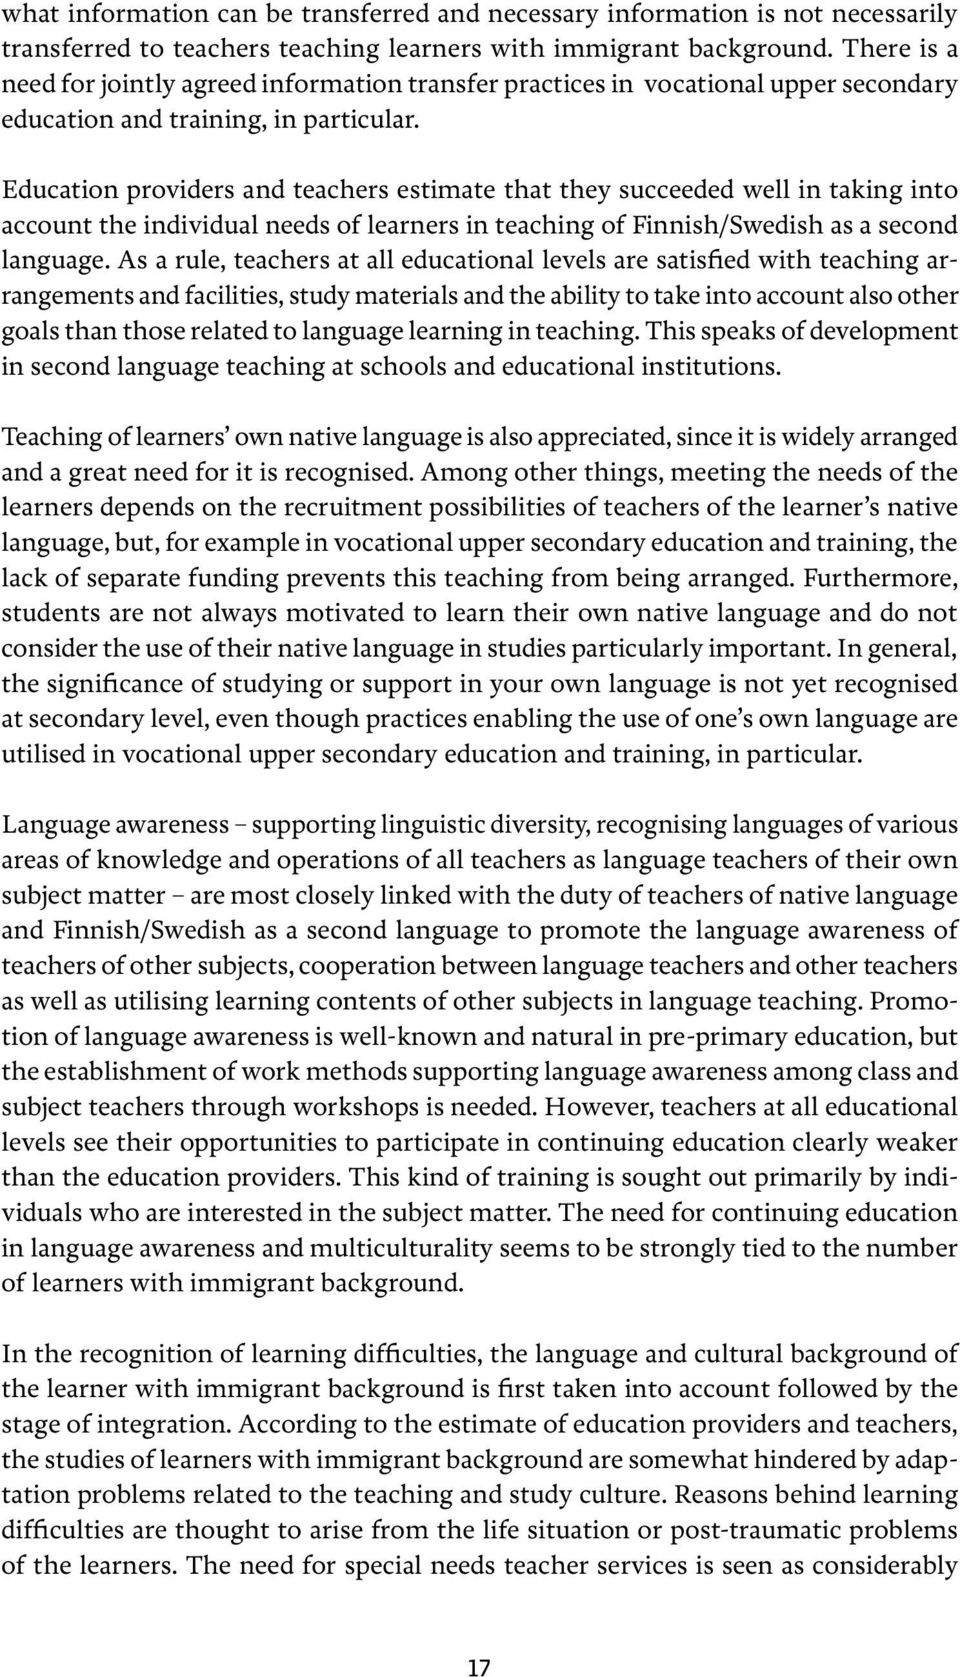 Education providers and teachers estimate that they succeeded well in taking into account the individual needs of learners in teaching of Finnish/Swedish as a second language.